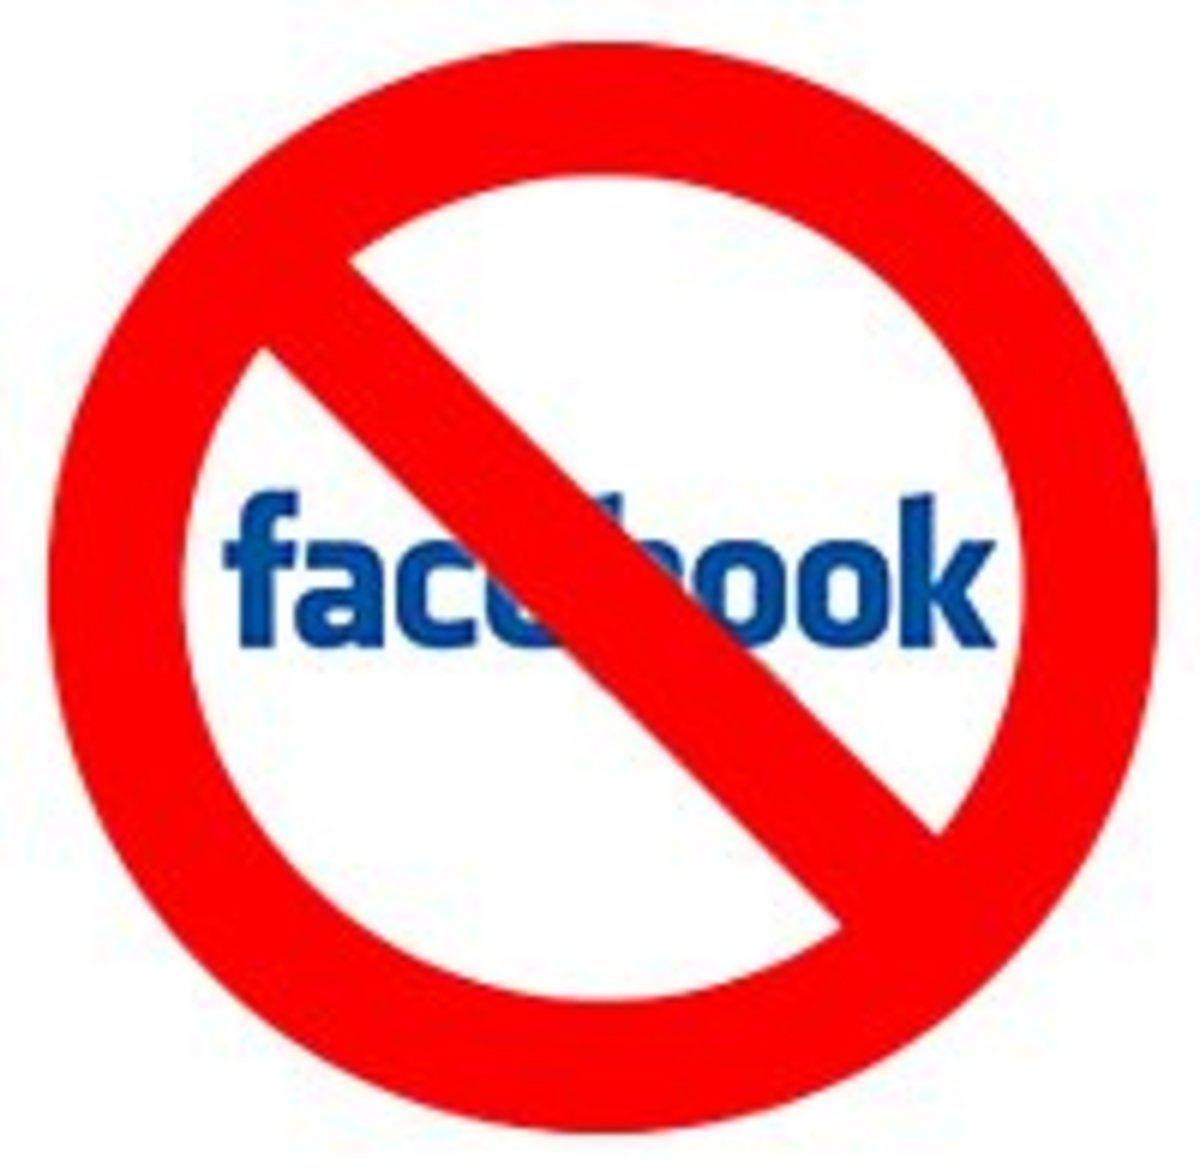 how to delete facebook not just deactivate